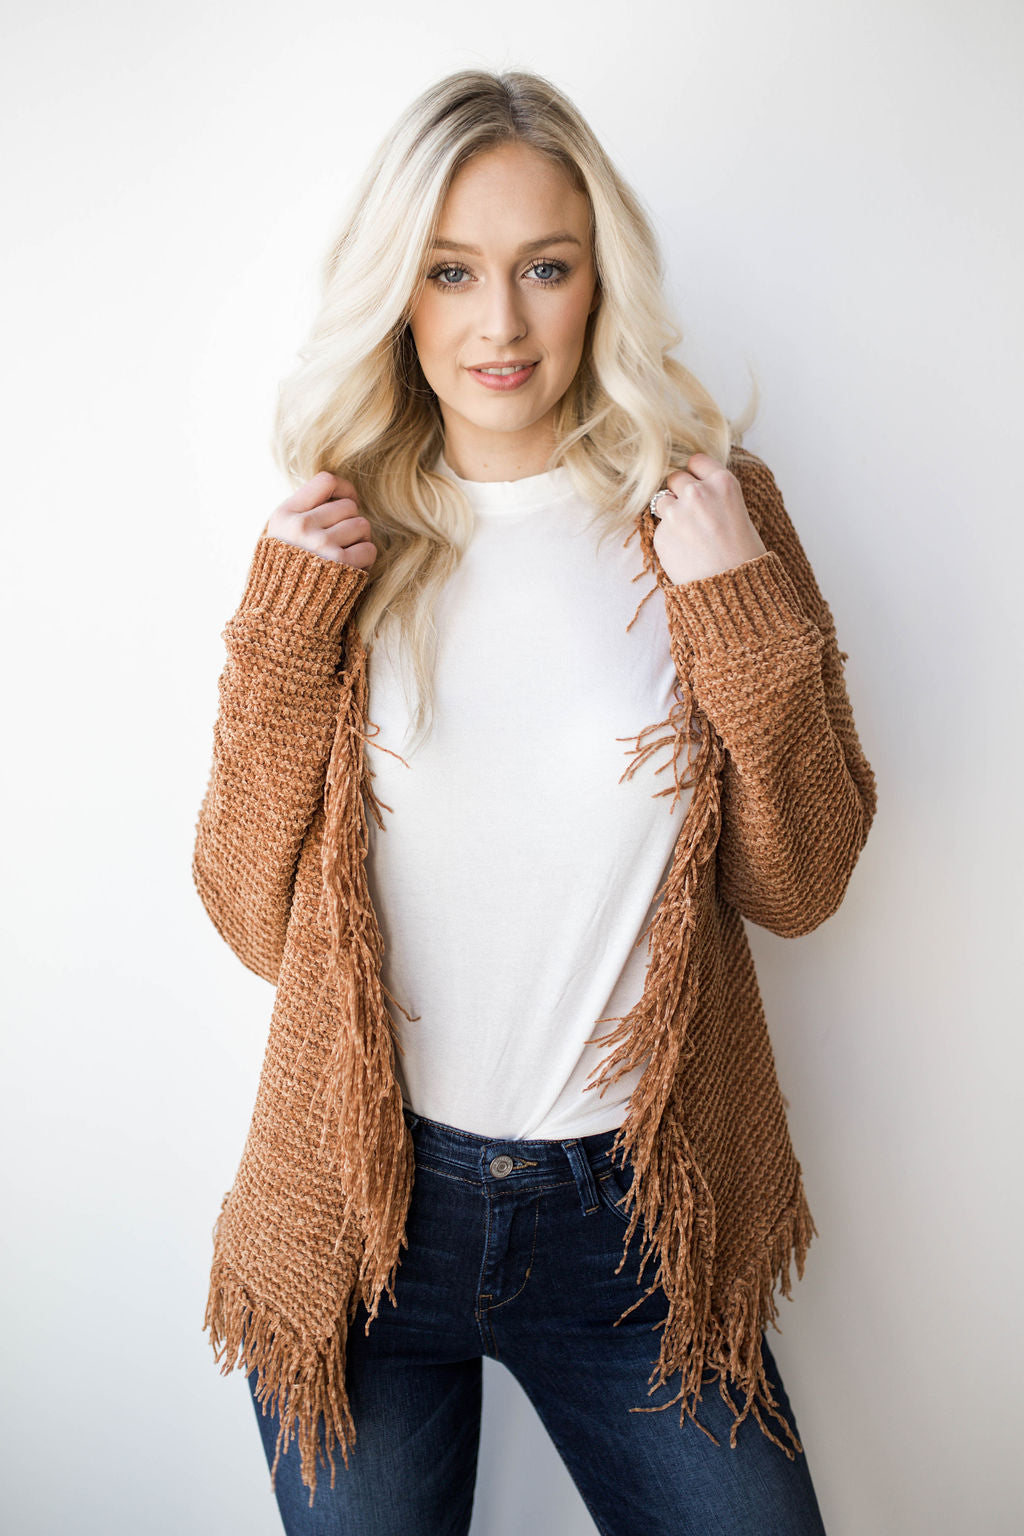 reckless love cardi